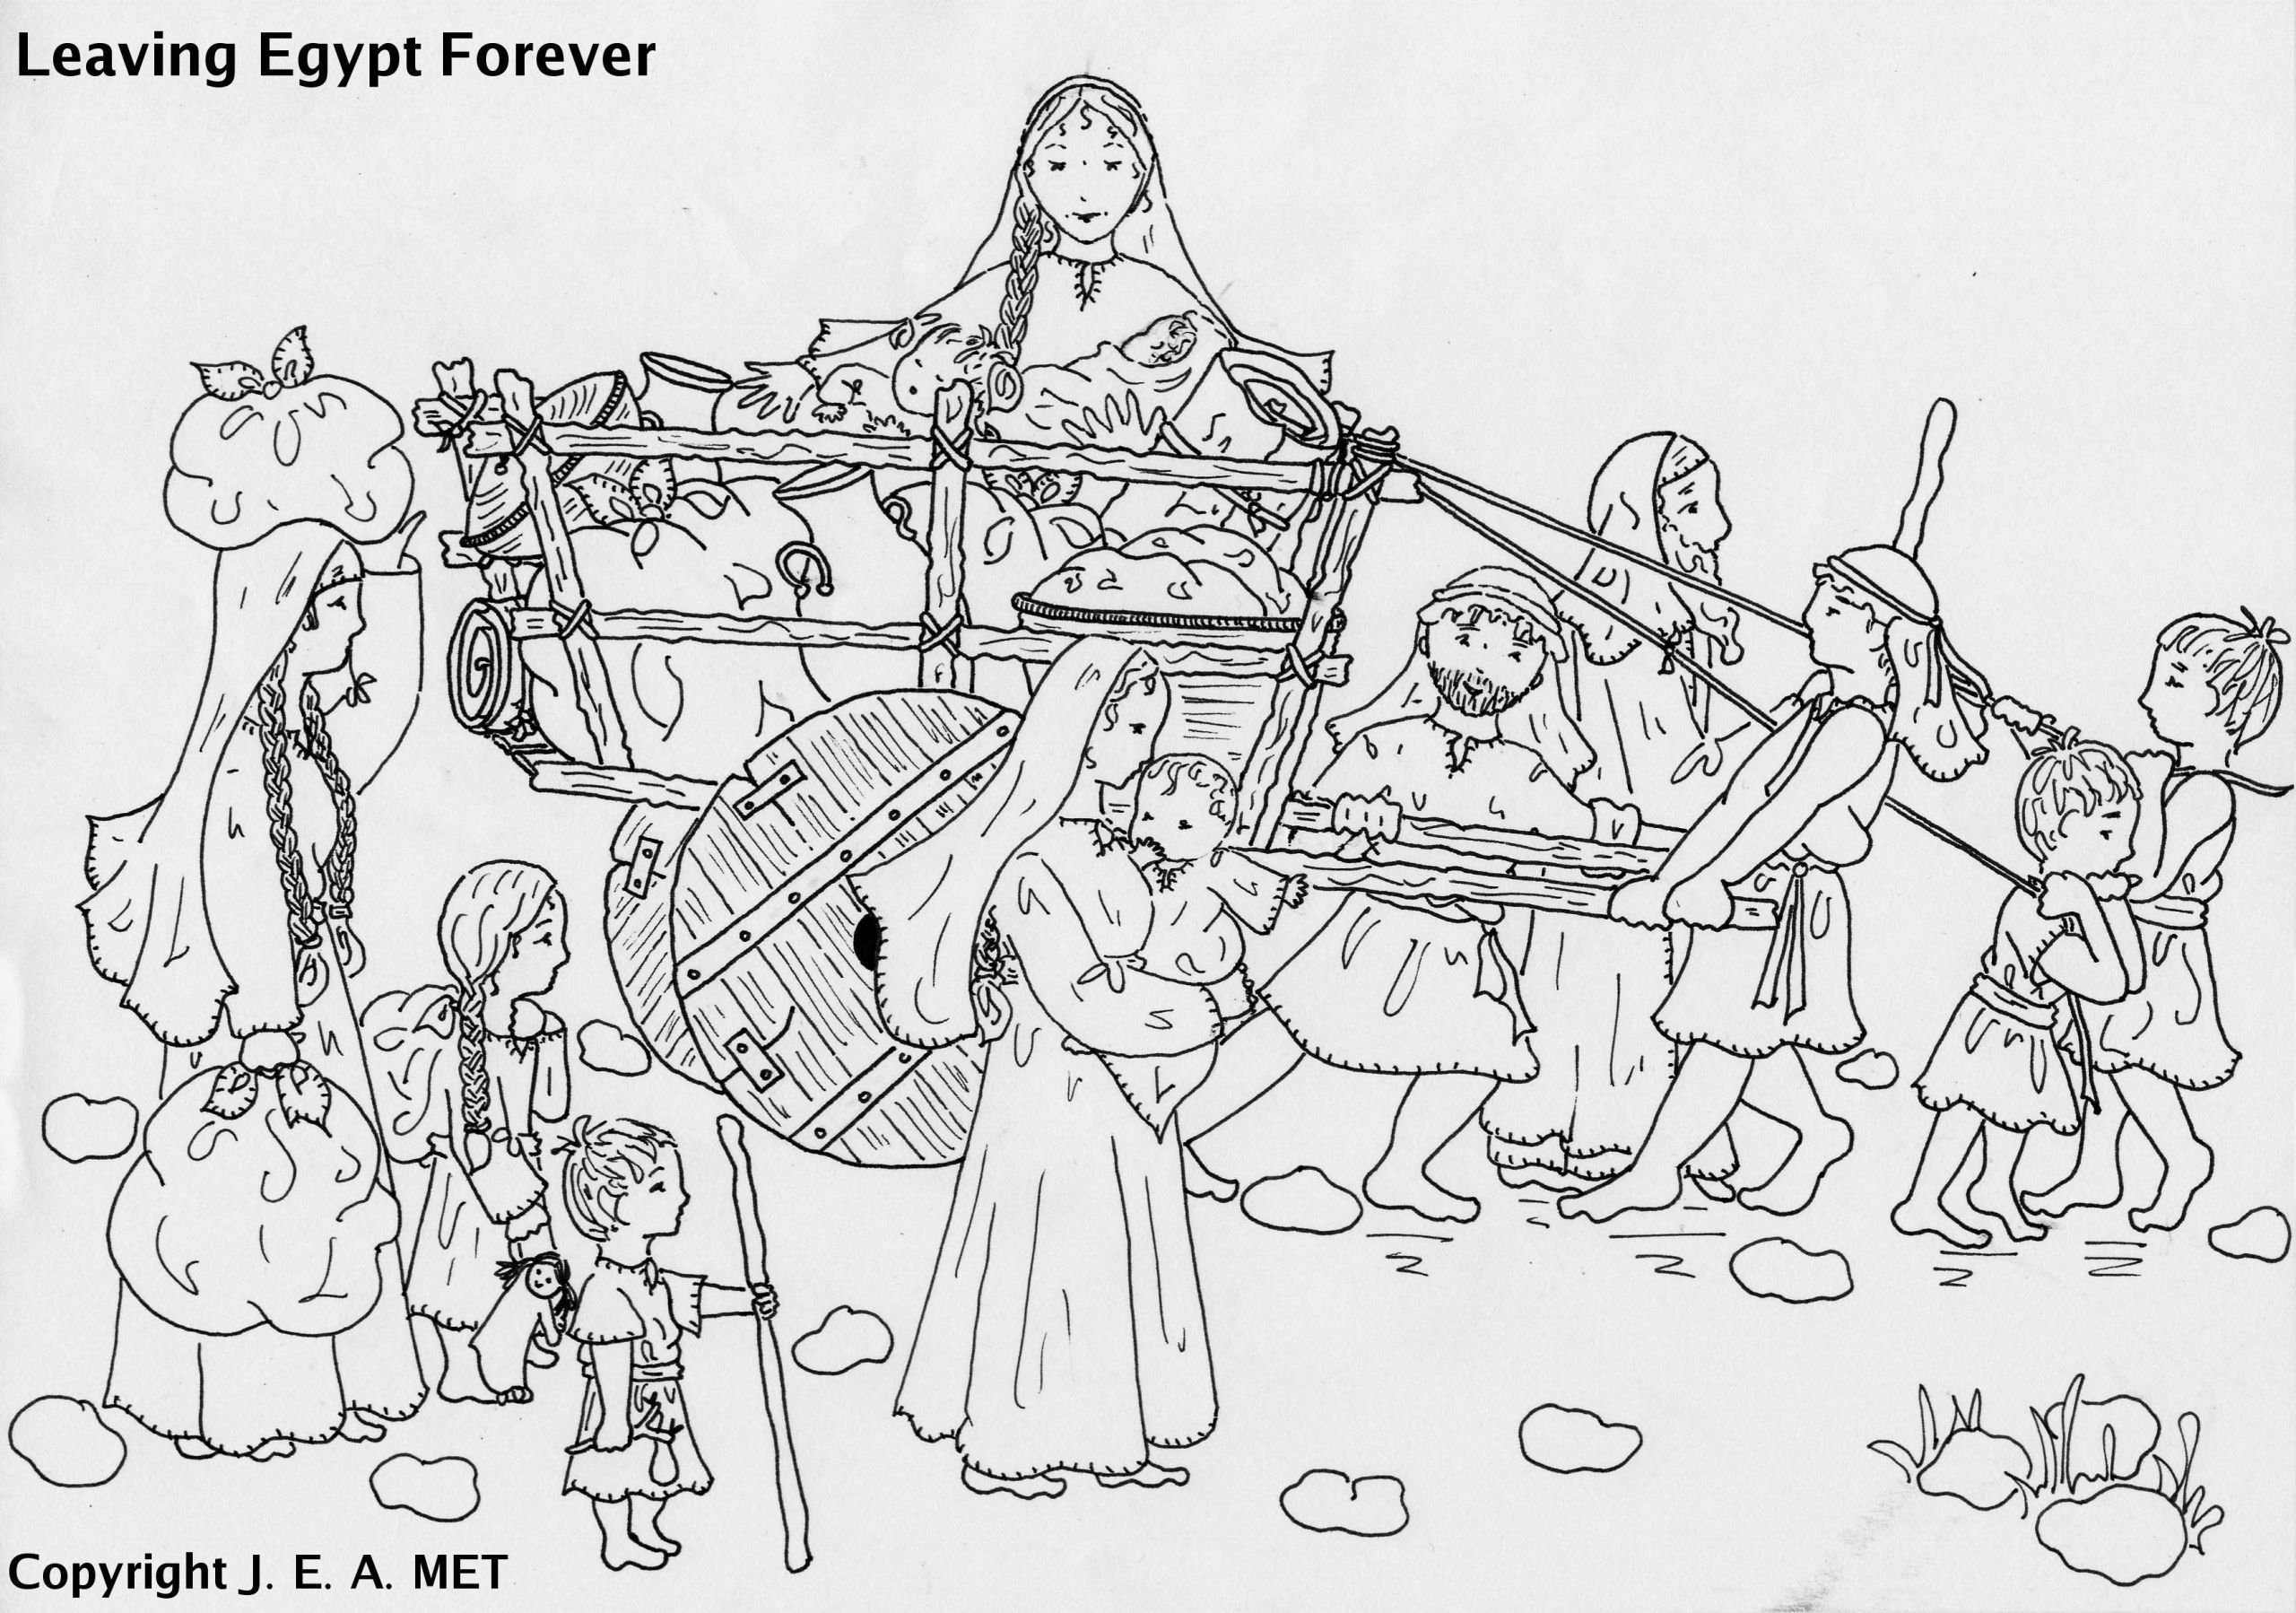 3 Christian Coloring Pages Preschool The Exodus Children S Church Bible Coloring Pages Coloring Pages Inspirational Bible Verse Coloring Page